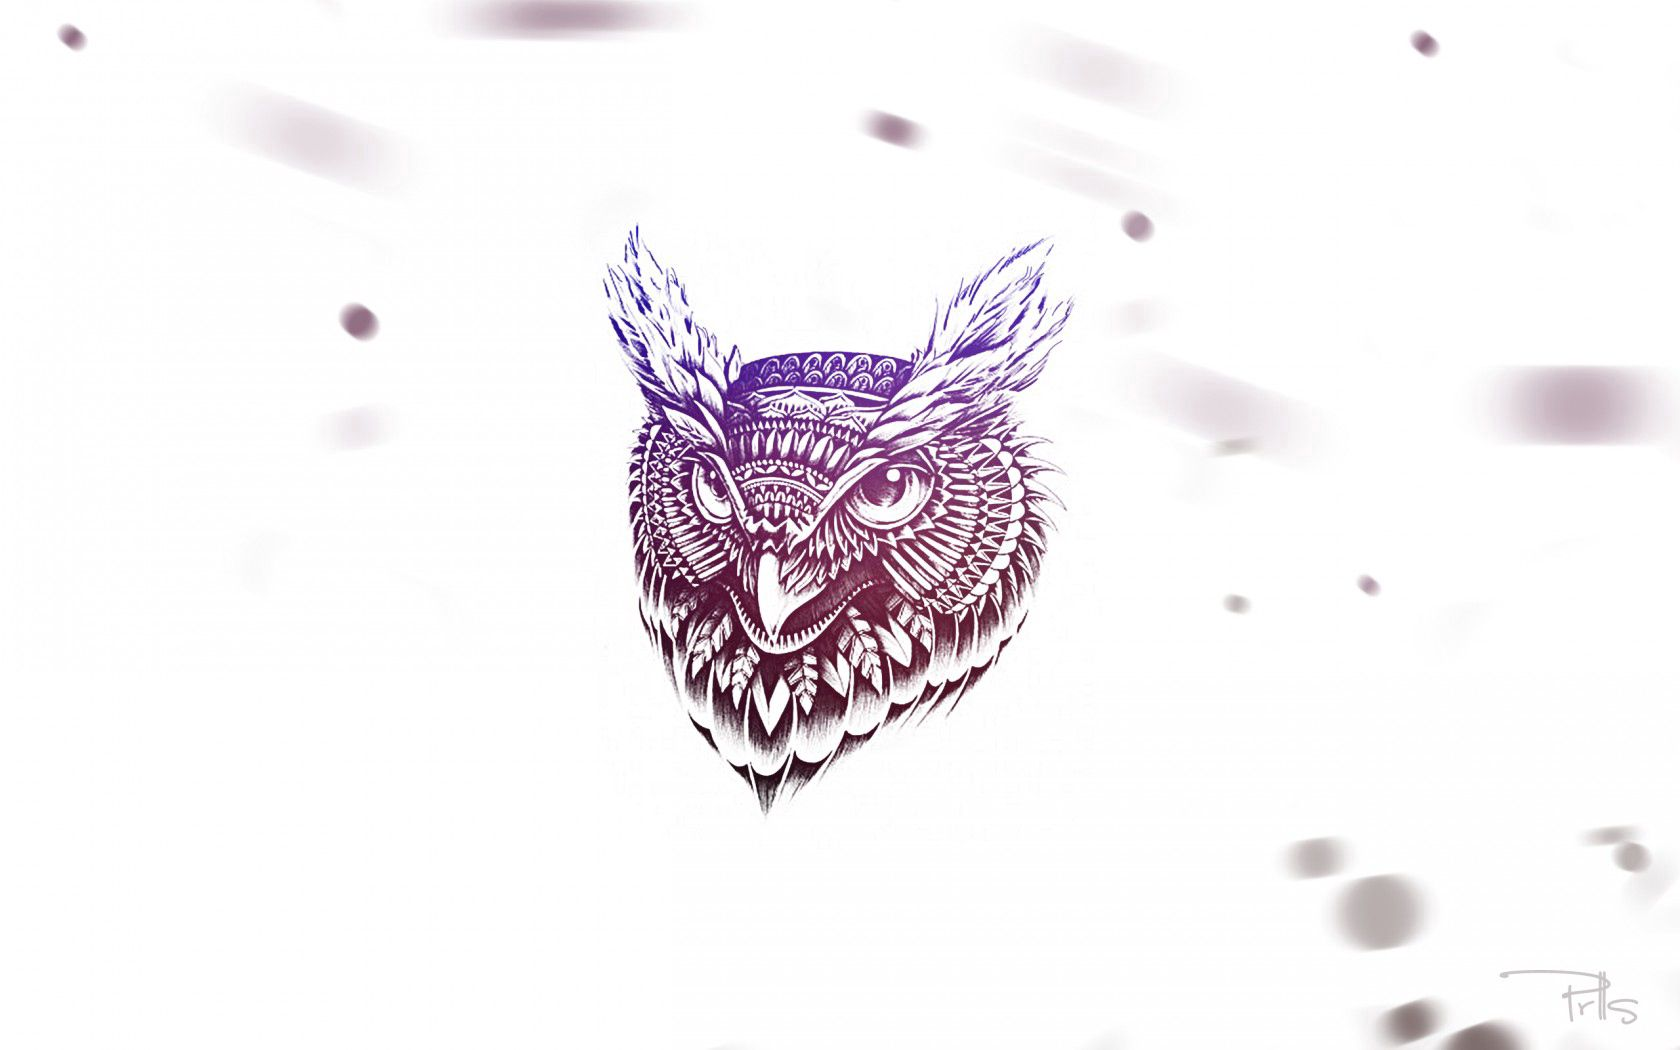 57758 download wallpaper Owl, Art, Feather, Vector, Face screensavers and pictures for free